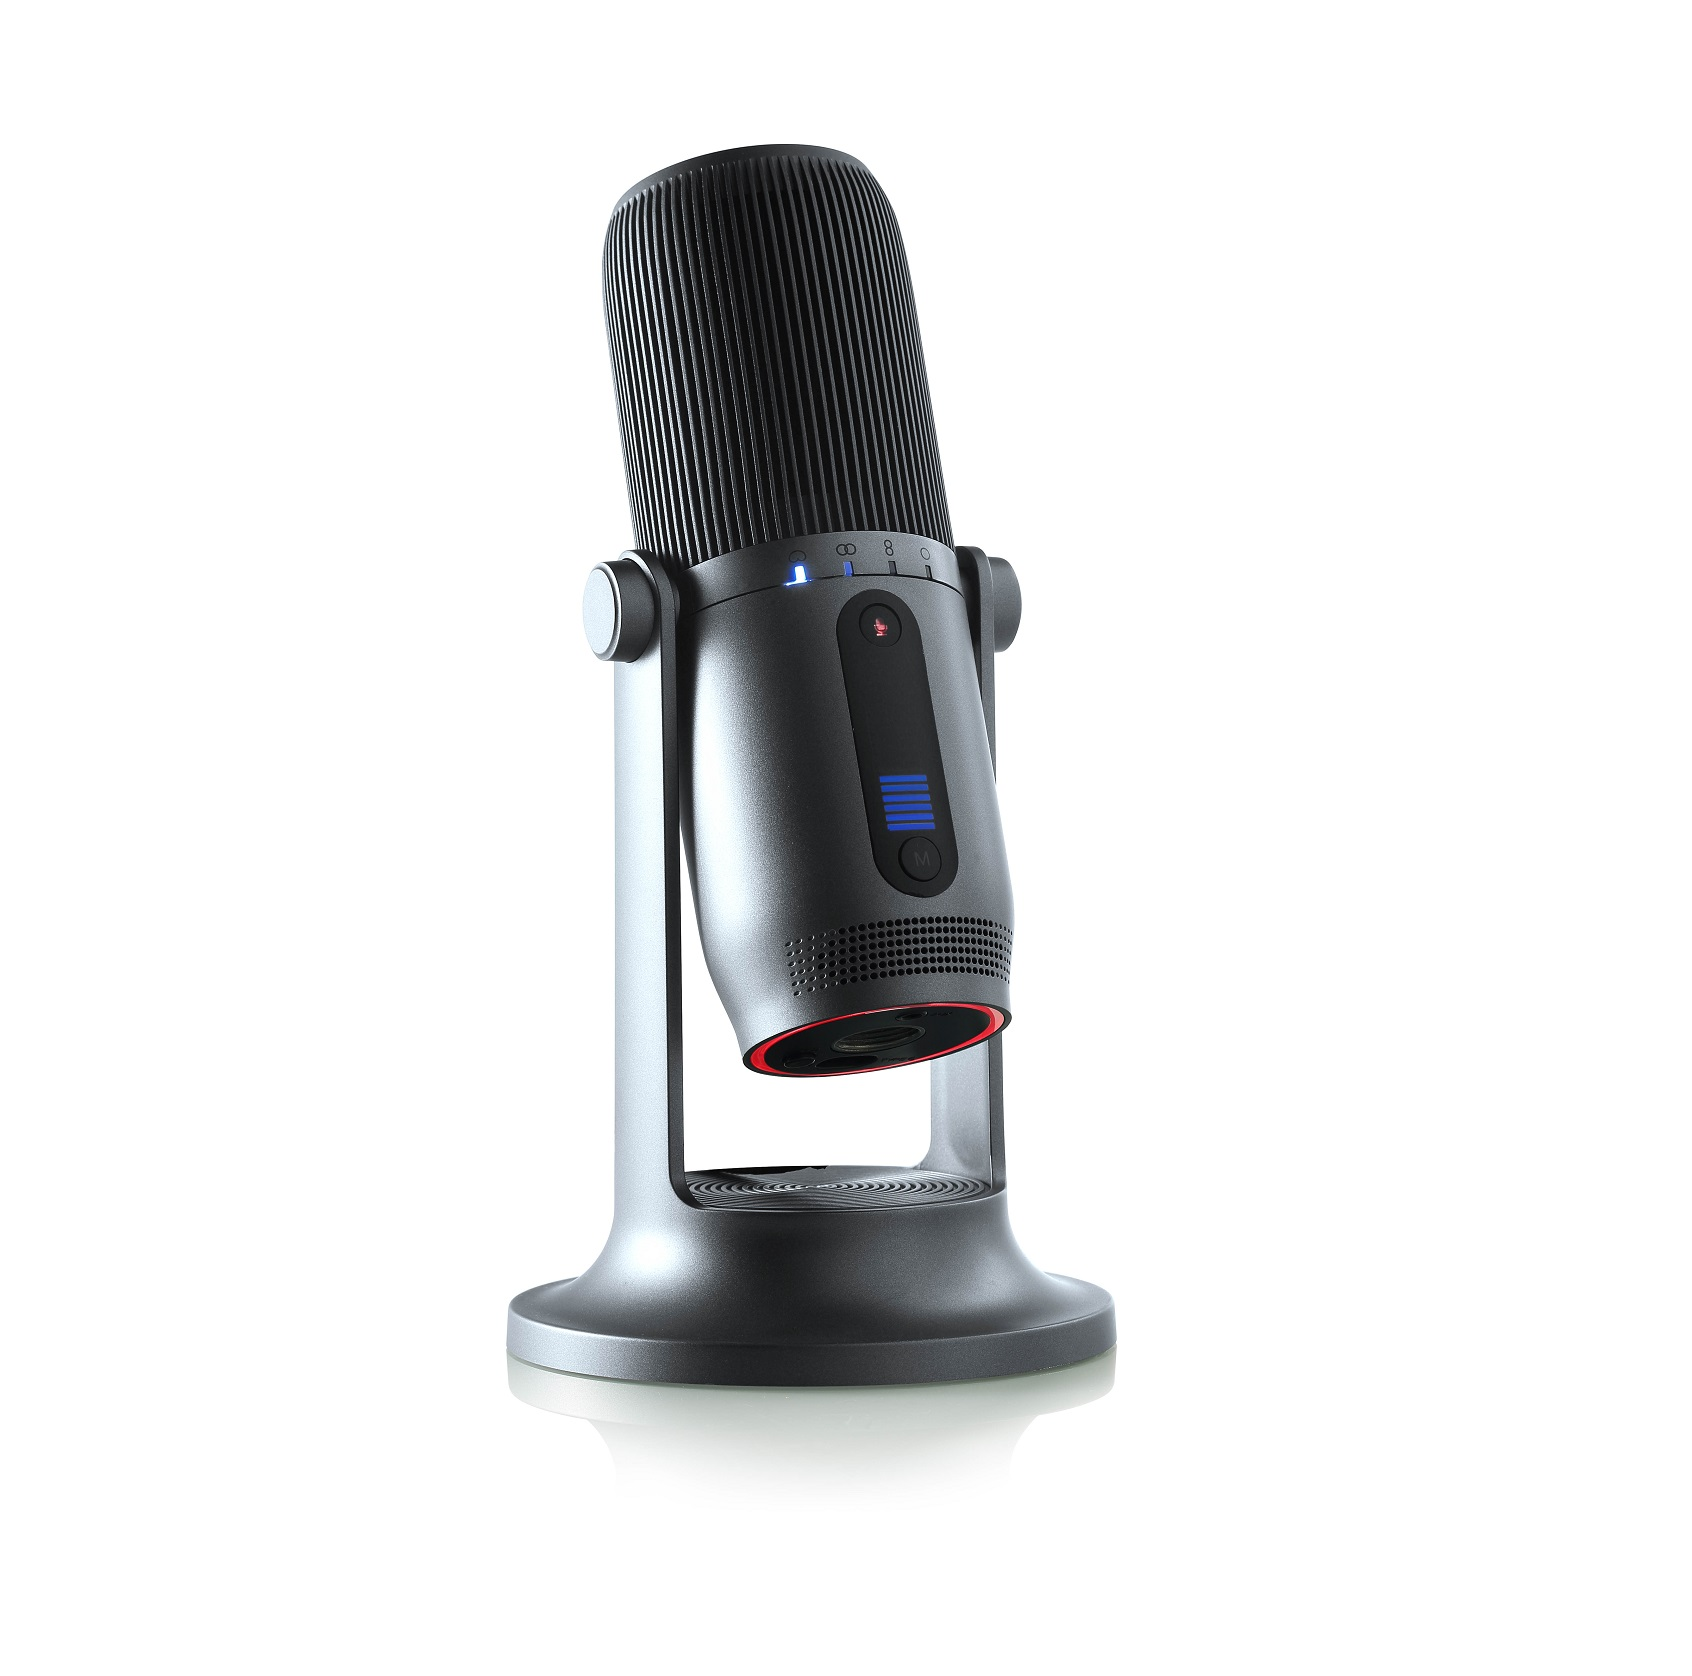 Microphone Thronmax Mdrill one Pro Slate Gray